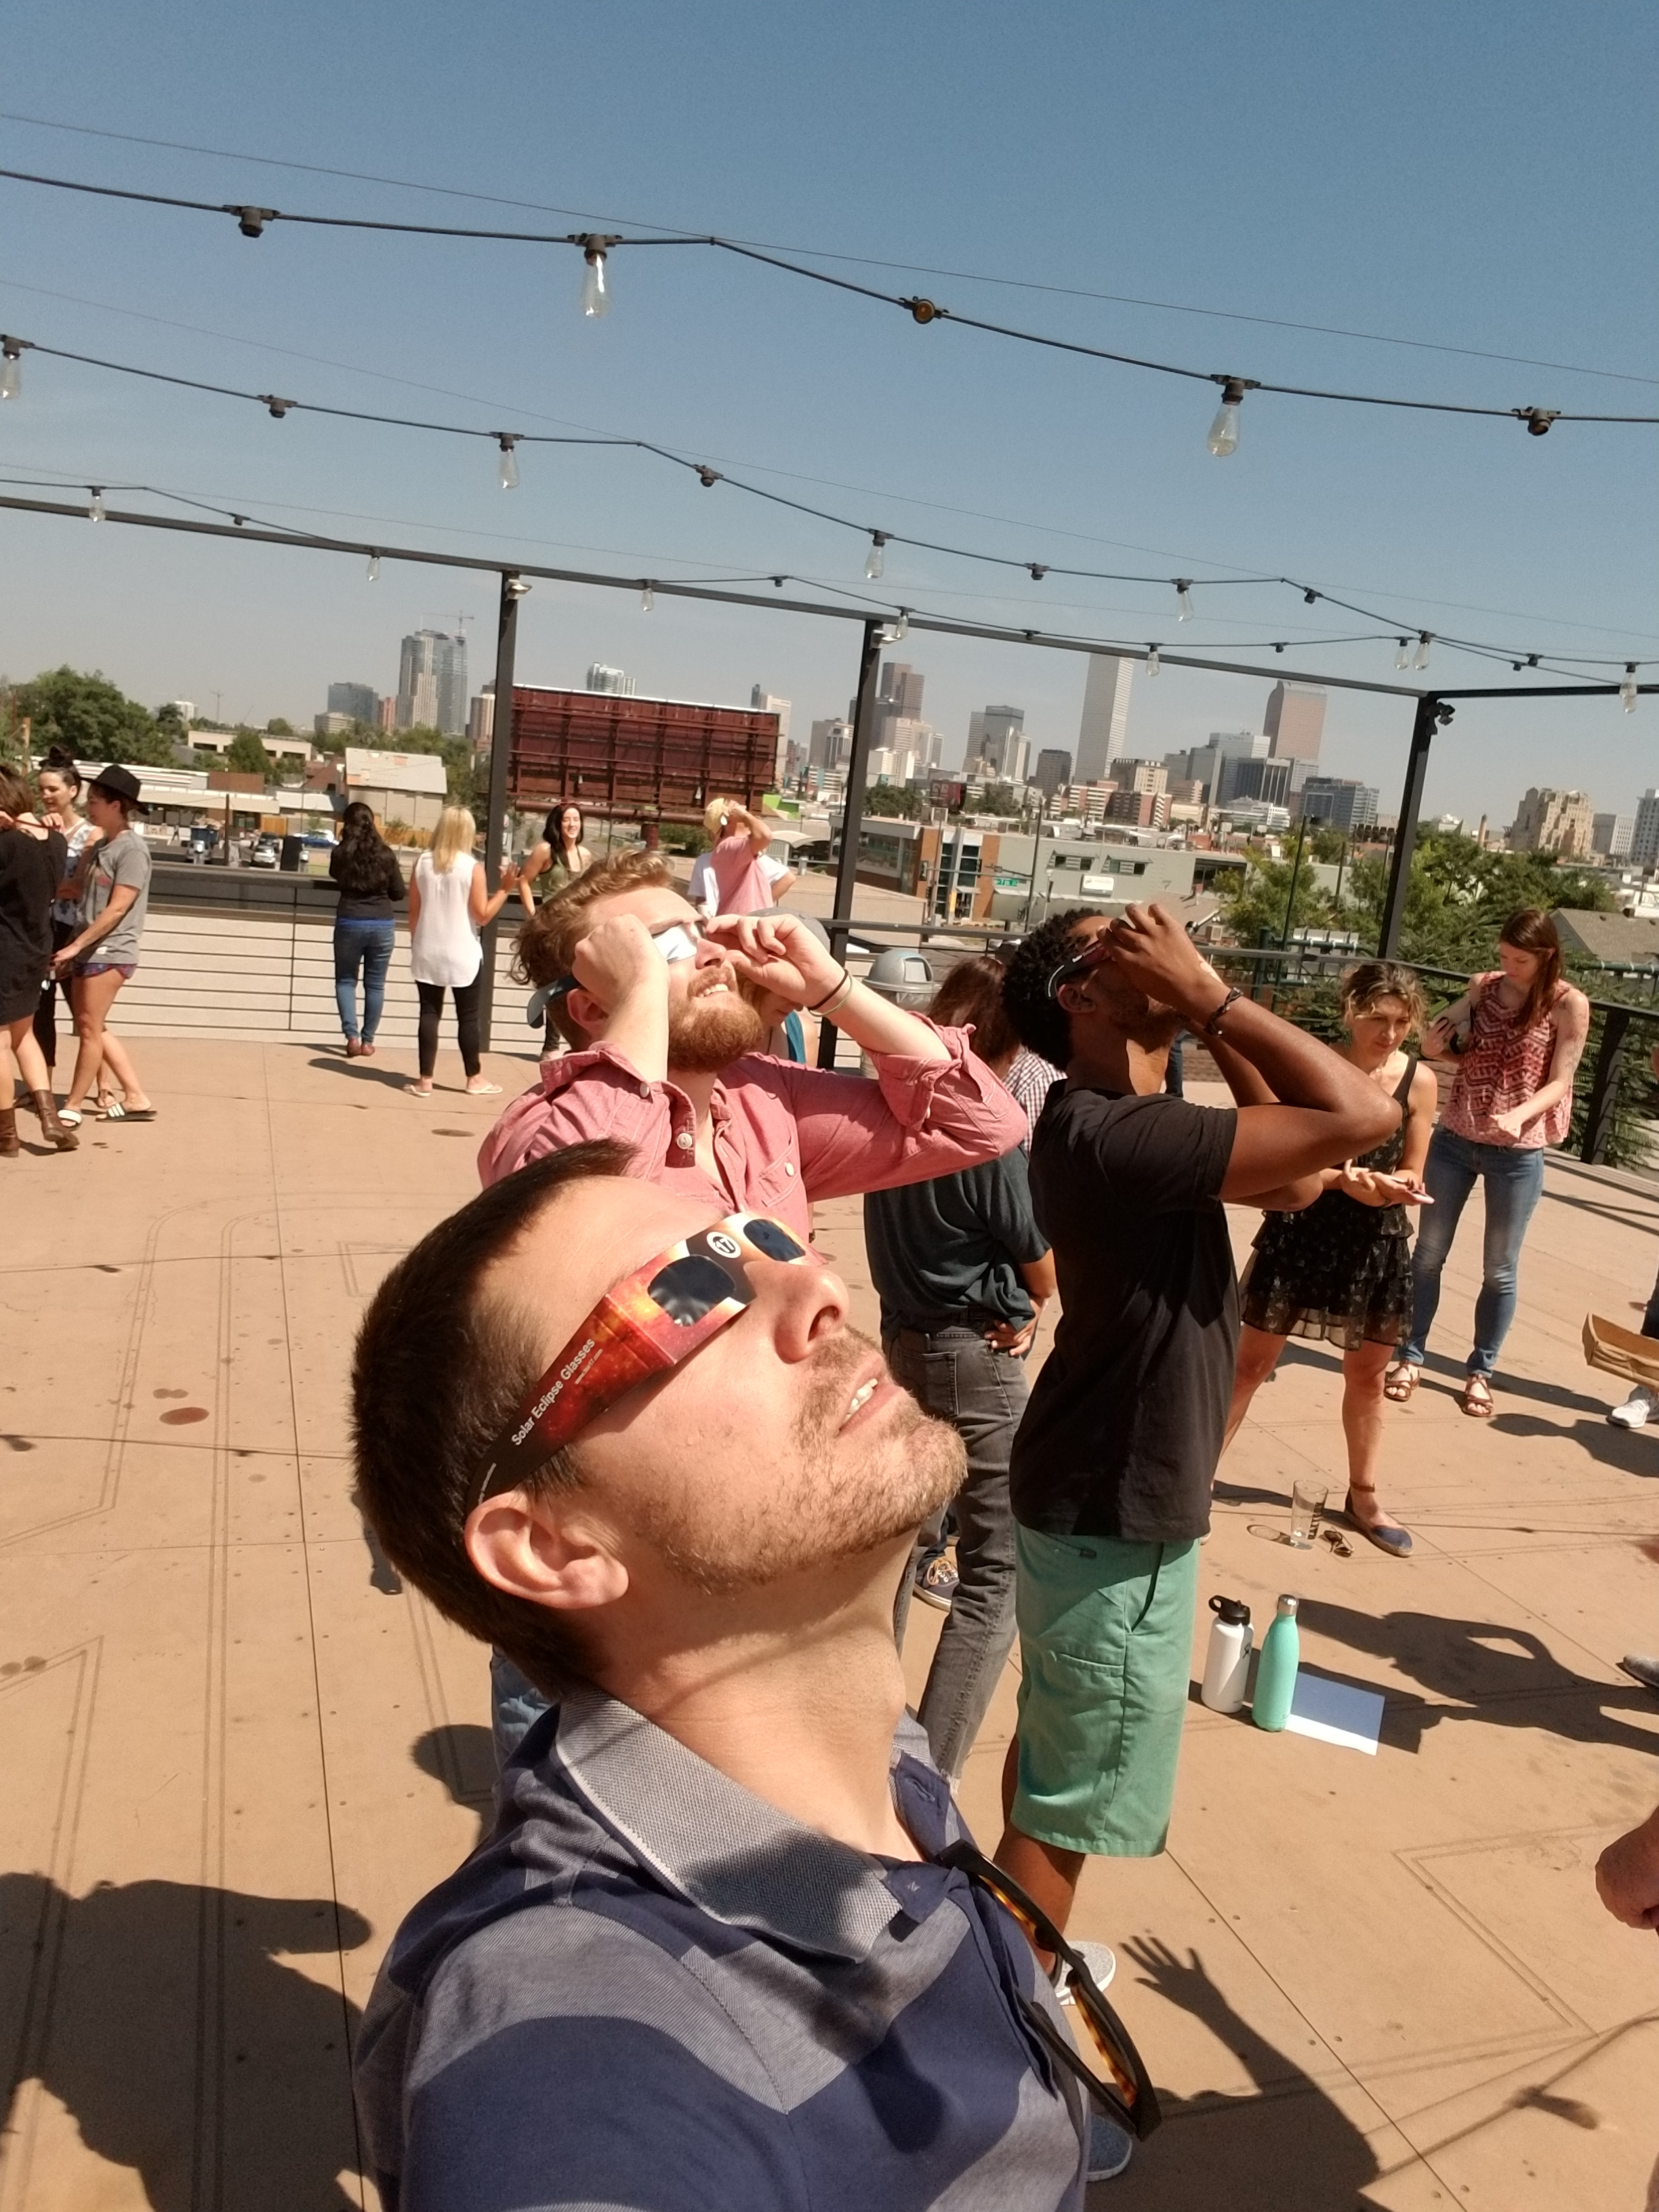 Viewing the Solar Eclipse at Battery621